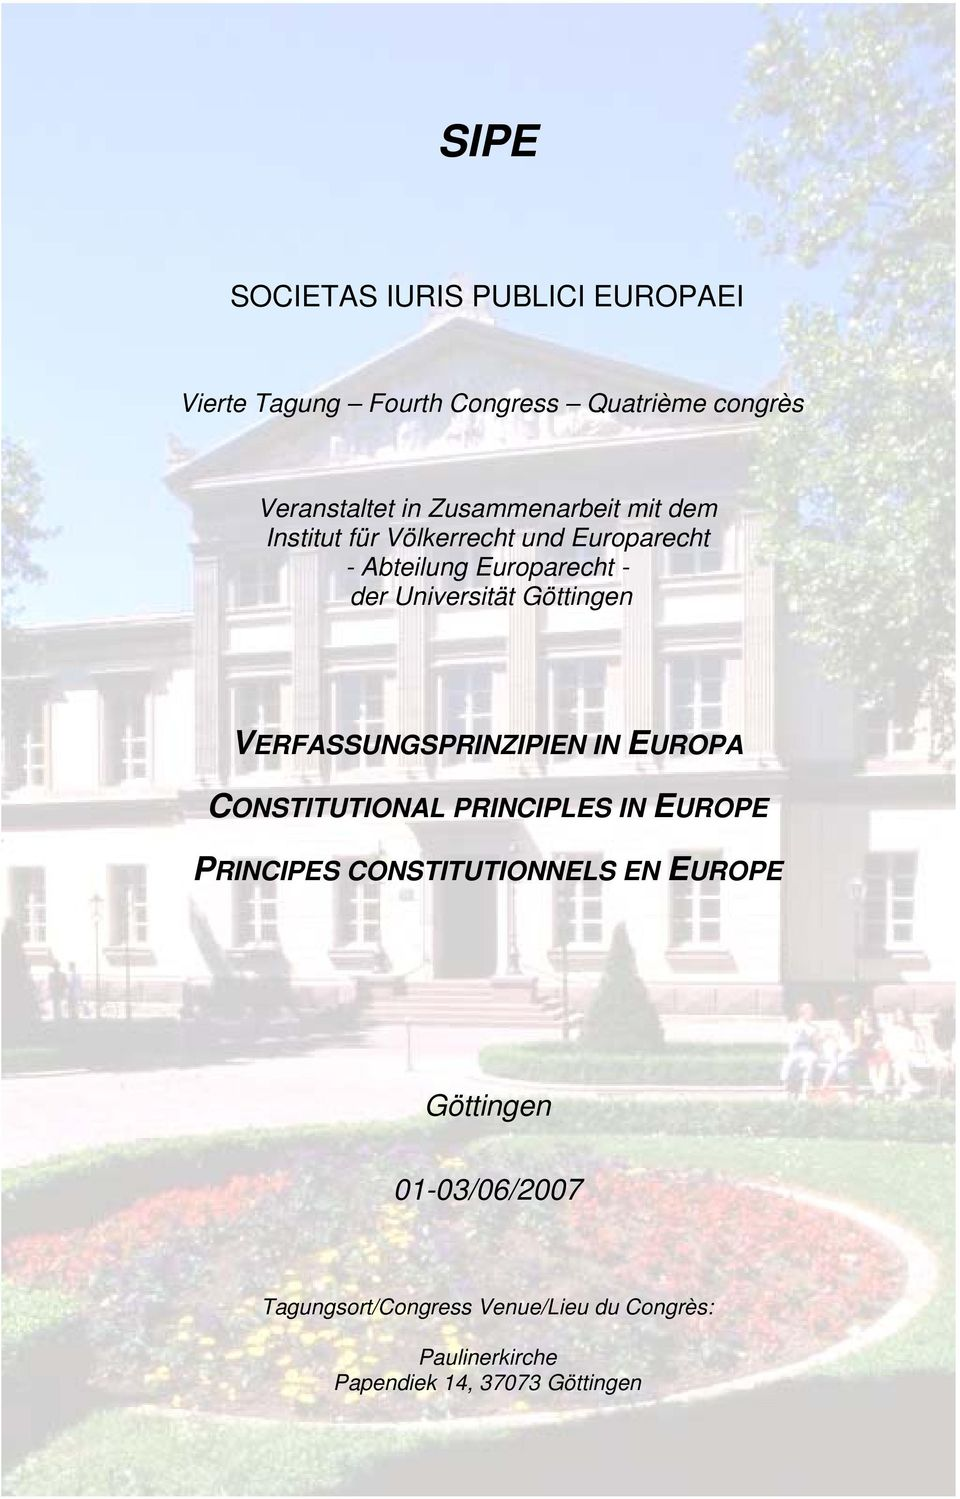 Göttingen VERFASSUNGSPRINZIPIEN IN EUROPA CONSTITUTIONAL PRINCIPLES IN EUROPE PRINCIPES CONSTITUTIONNELS EN